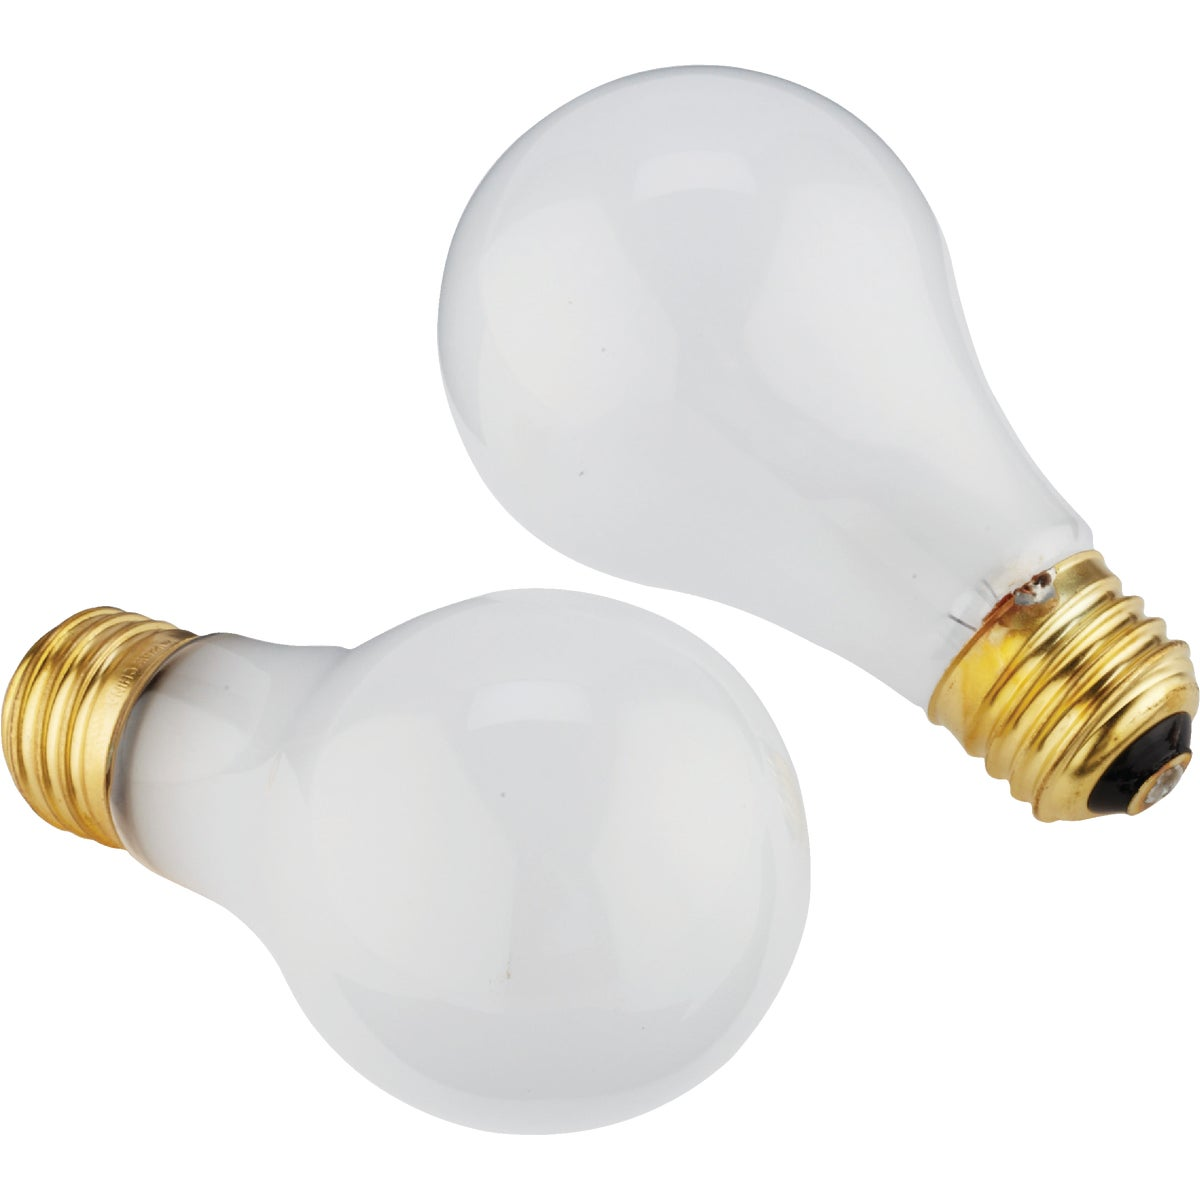 A-19 25W/12V HOUSE BULB - 54892 by Camco Mfg.